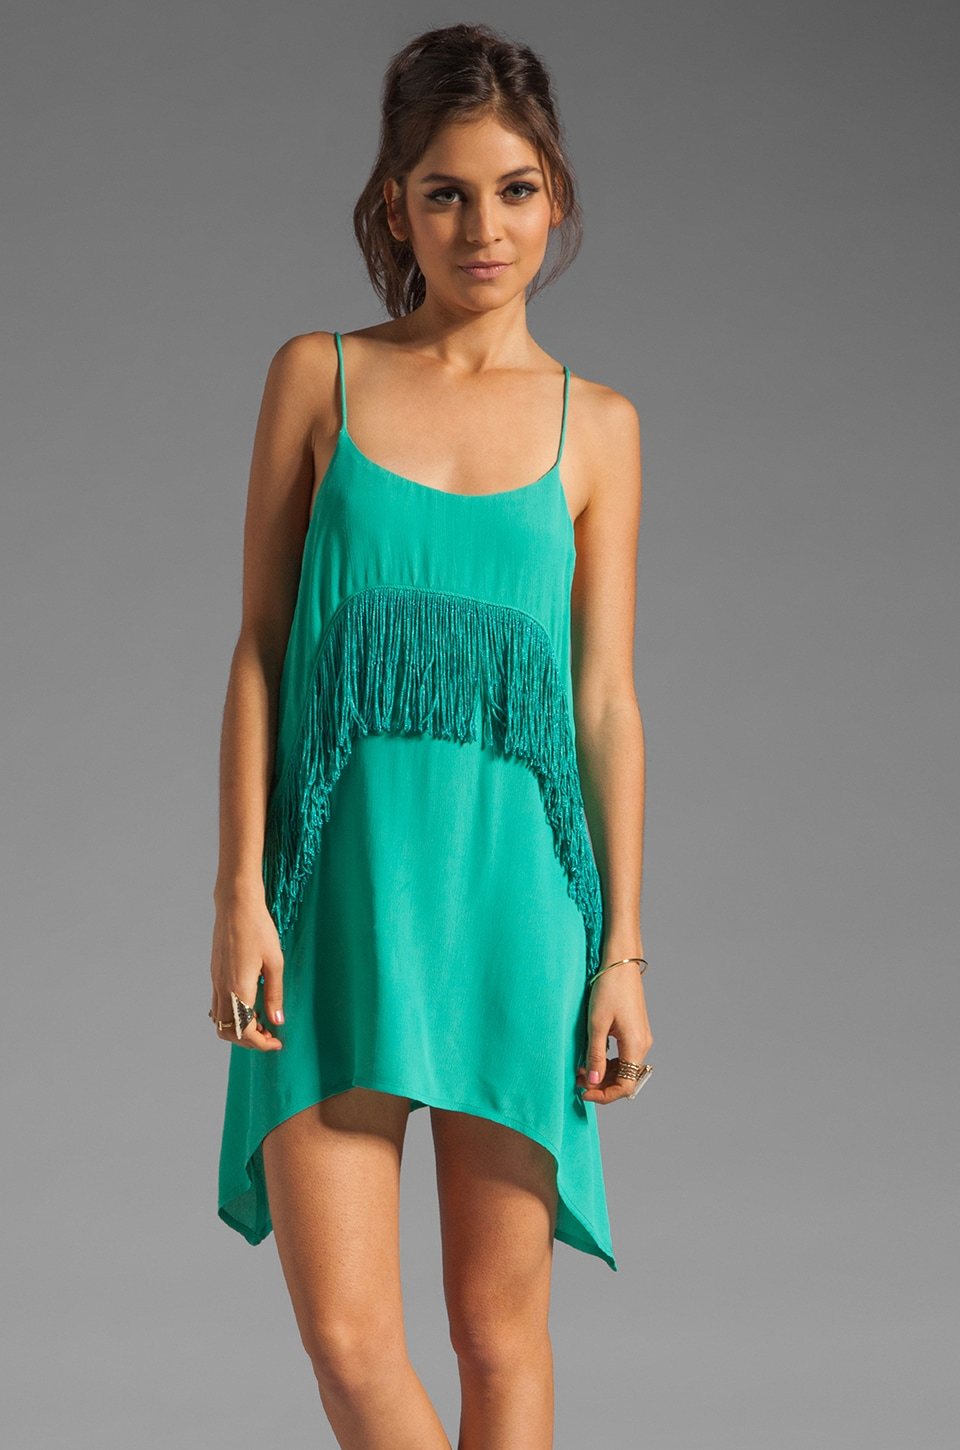 RVCA Black Metal Fringe Dress in Lagoon